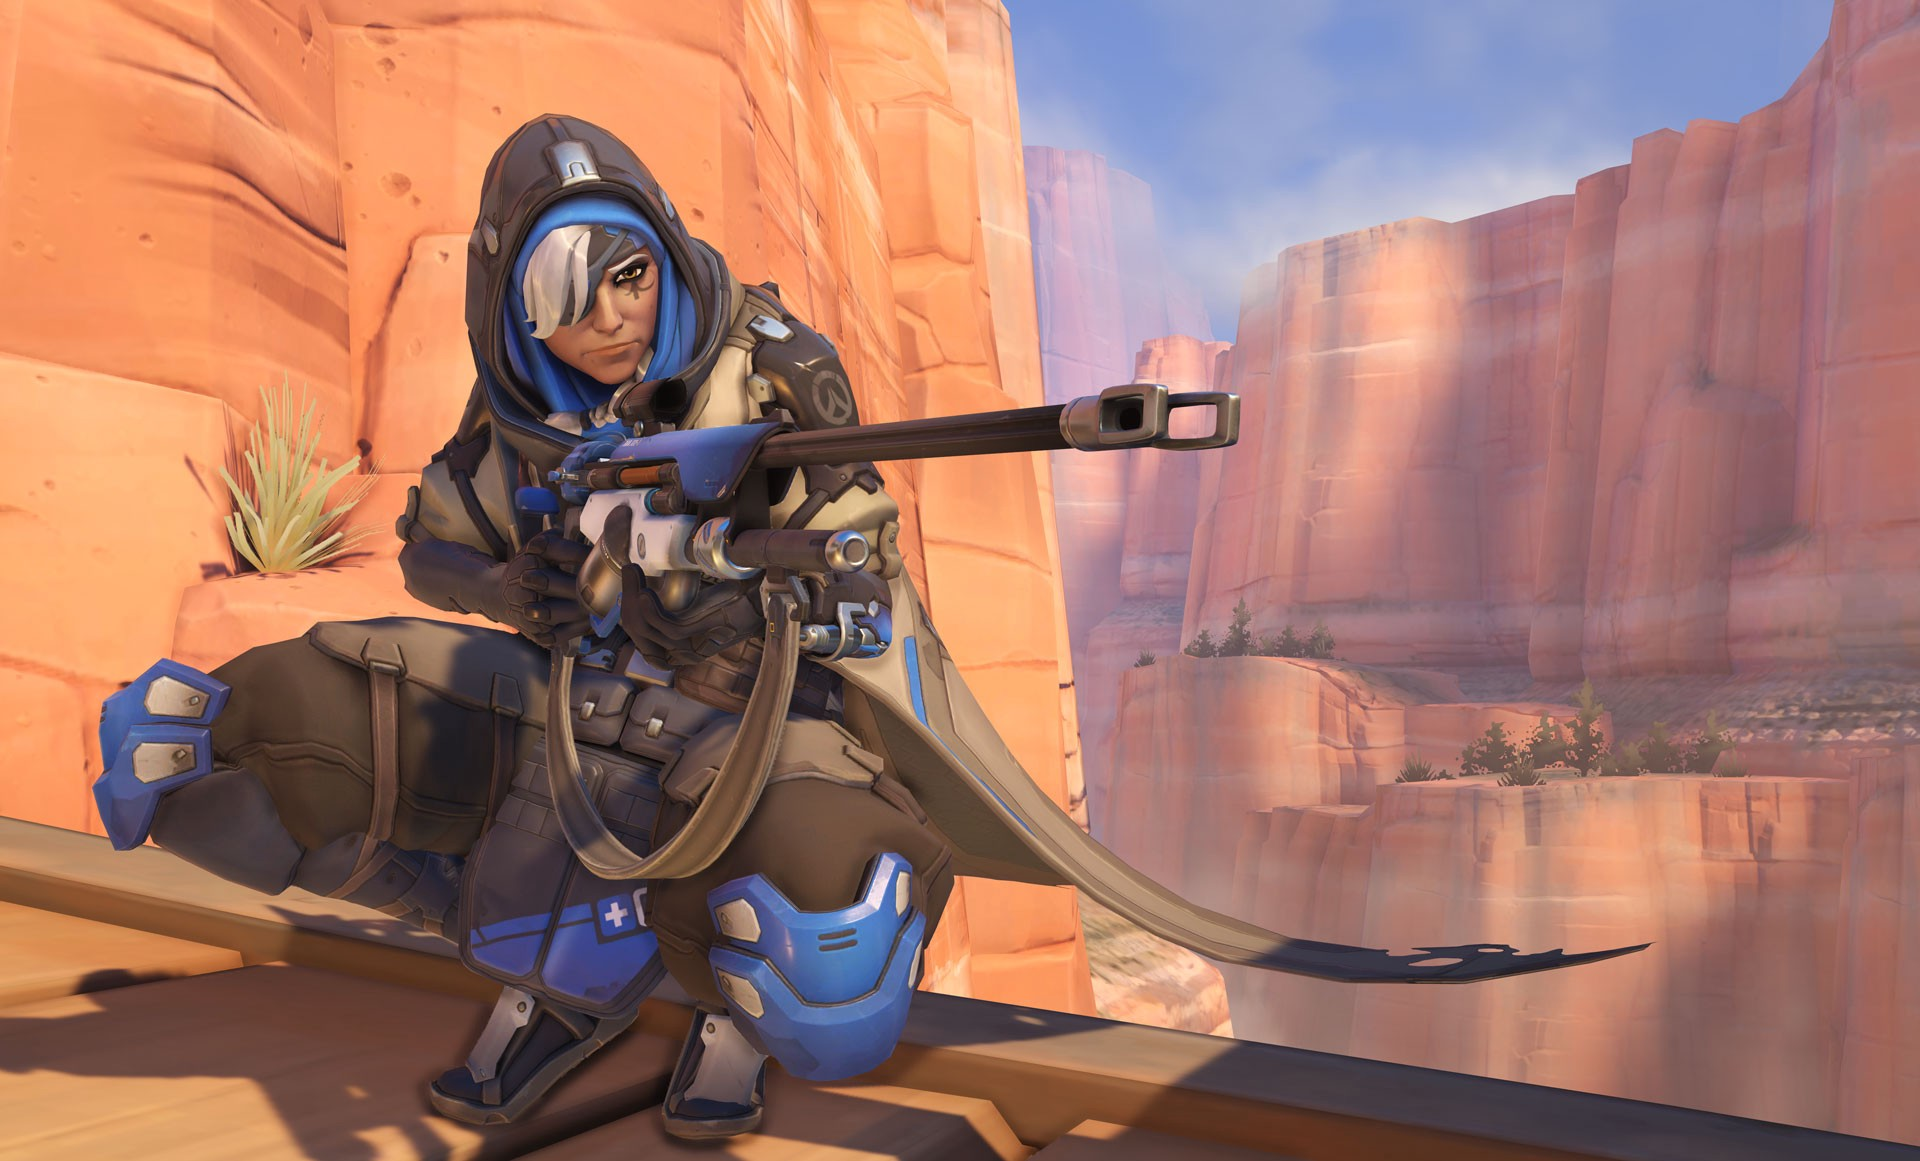 Overwatch: Ana to Receive Friendly Aim Assist on Console in